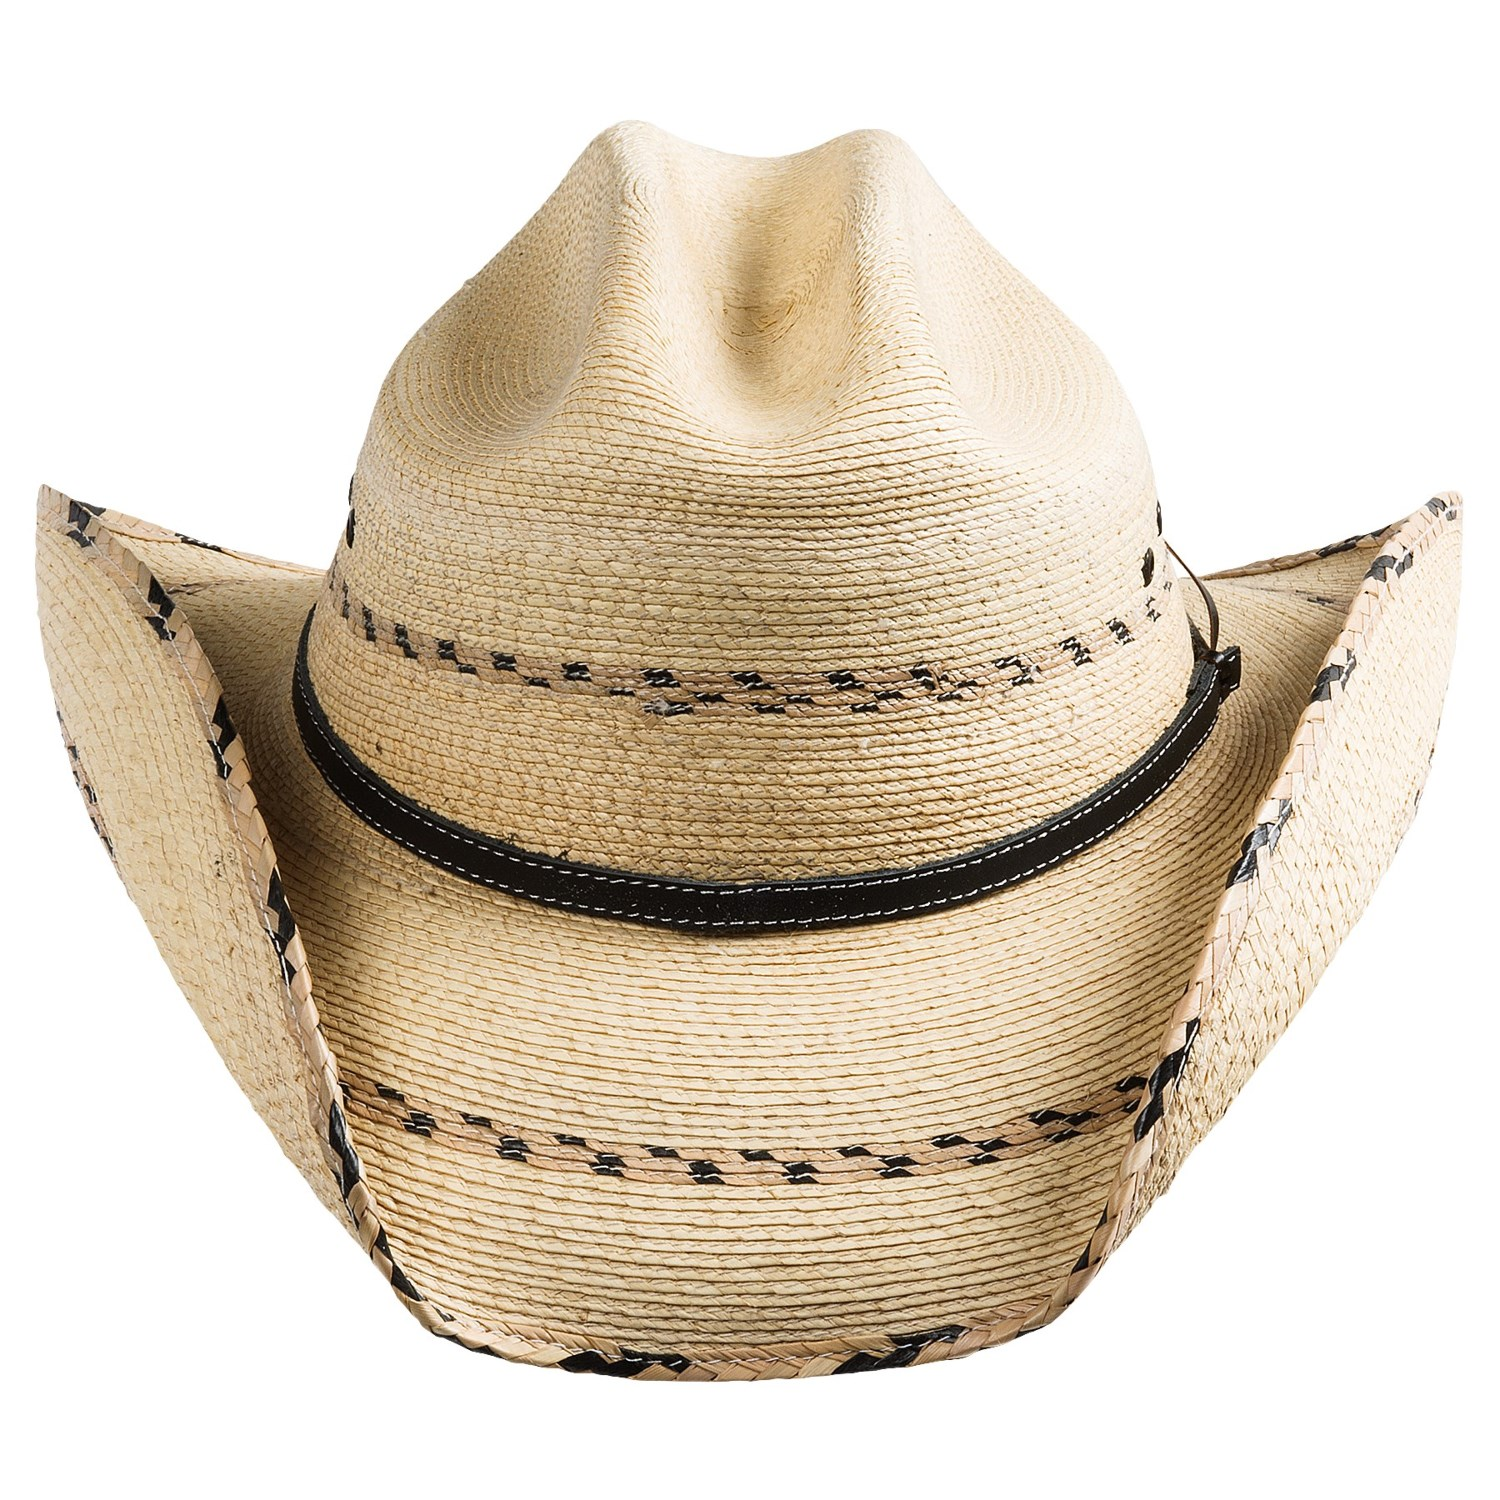 Kenny Chesney Palm Leaf Straw Cowboy Hat - Hat HD Image Ukjugs.Org 2ac8accd3b6